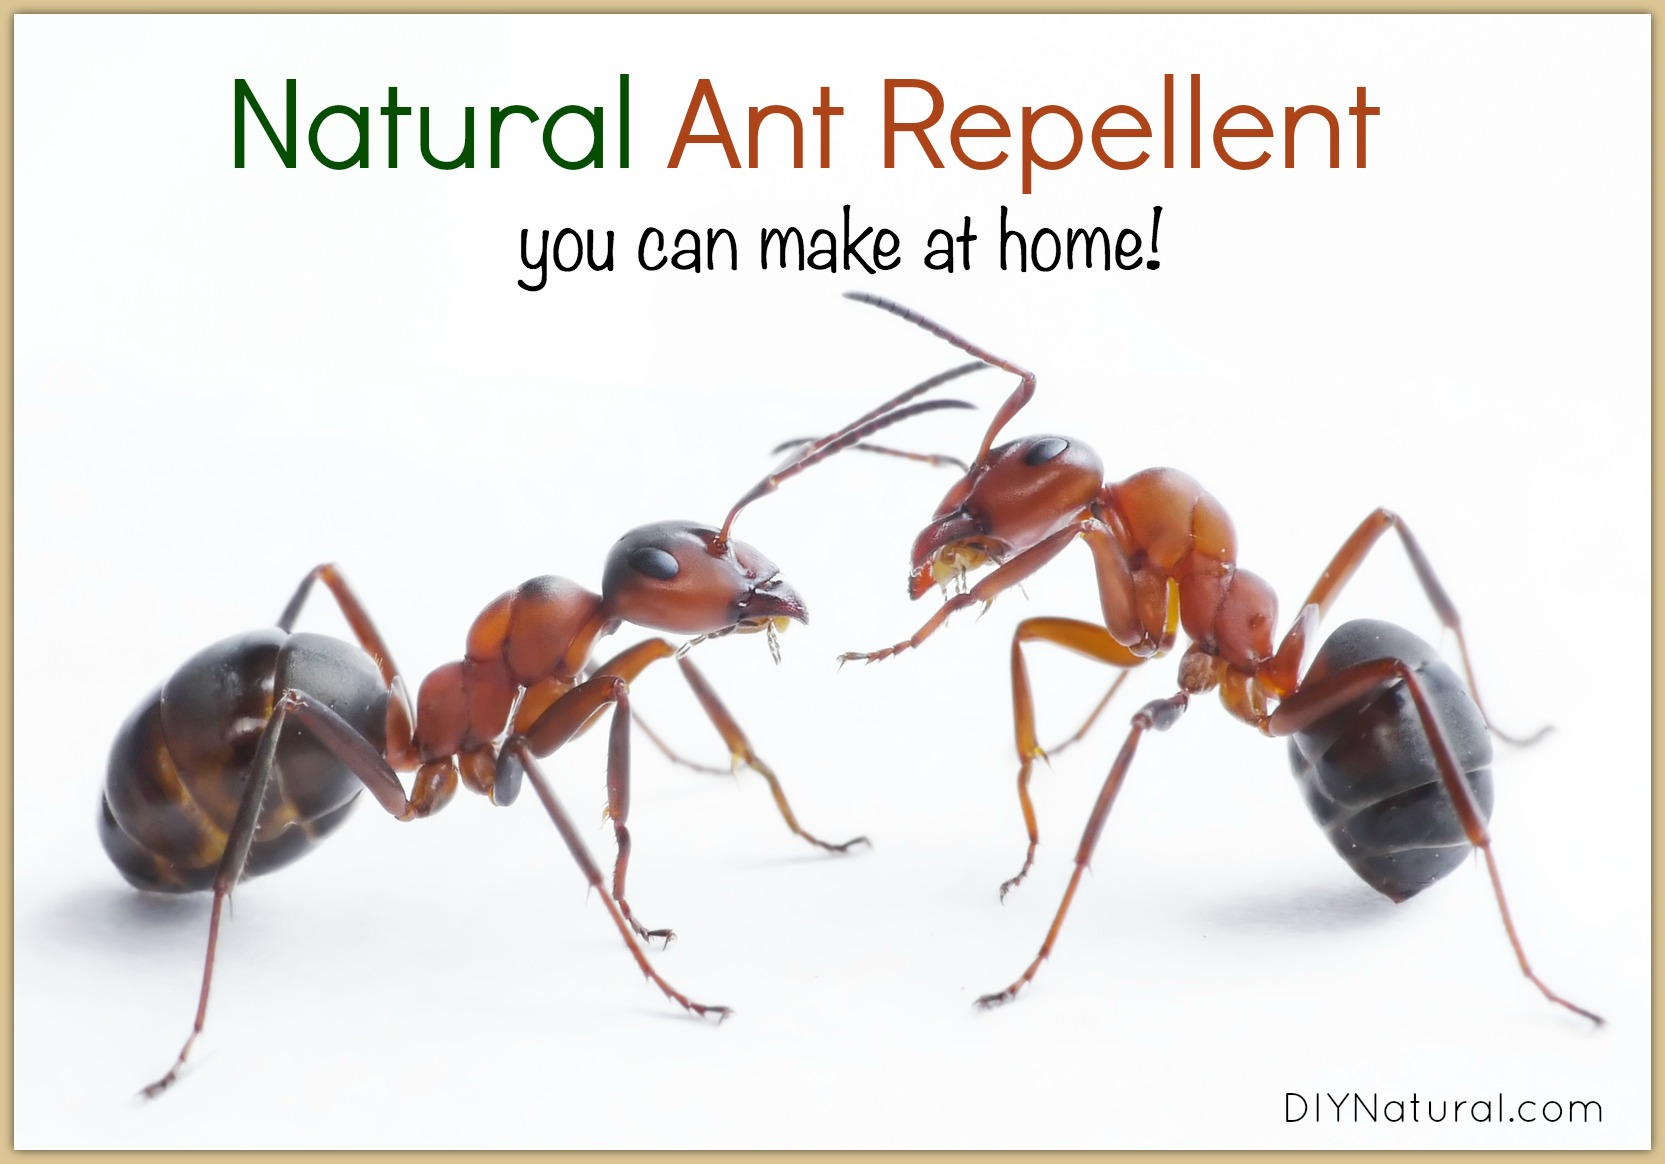 Natural Ant Repellent In Simple and Handy Spray Form